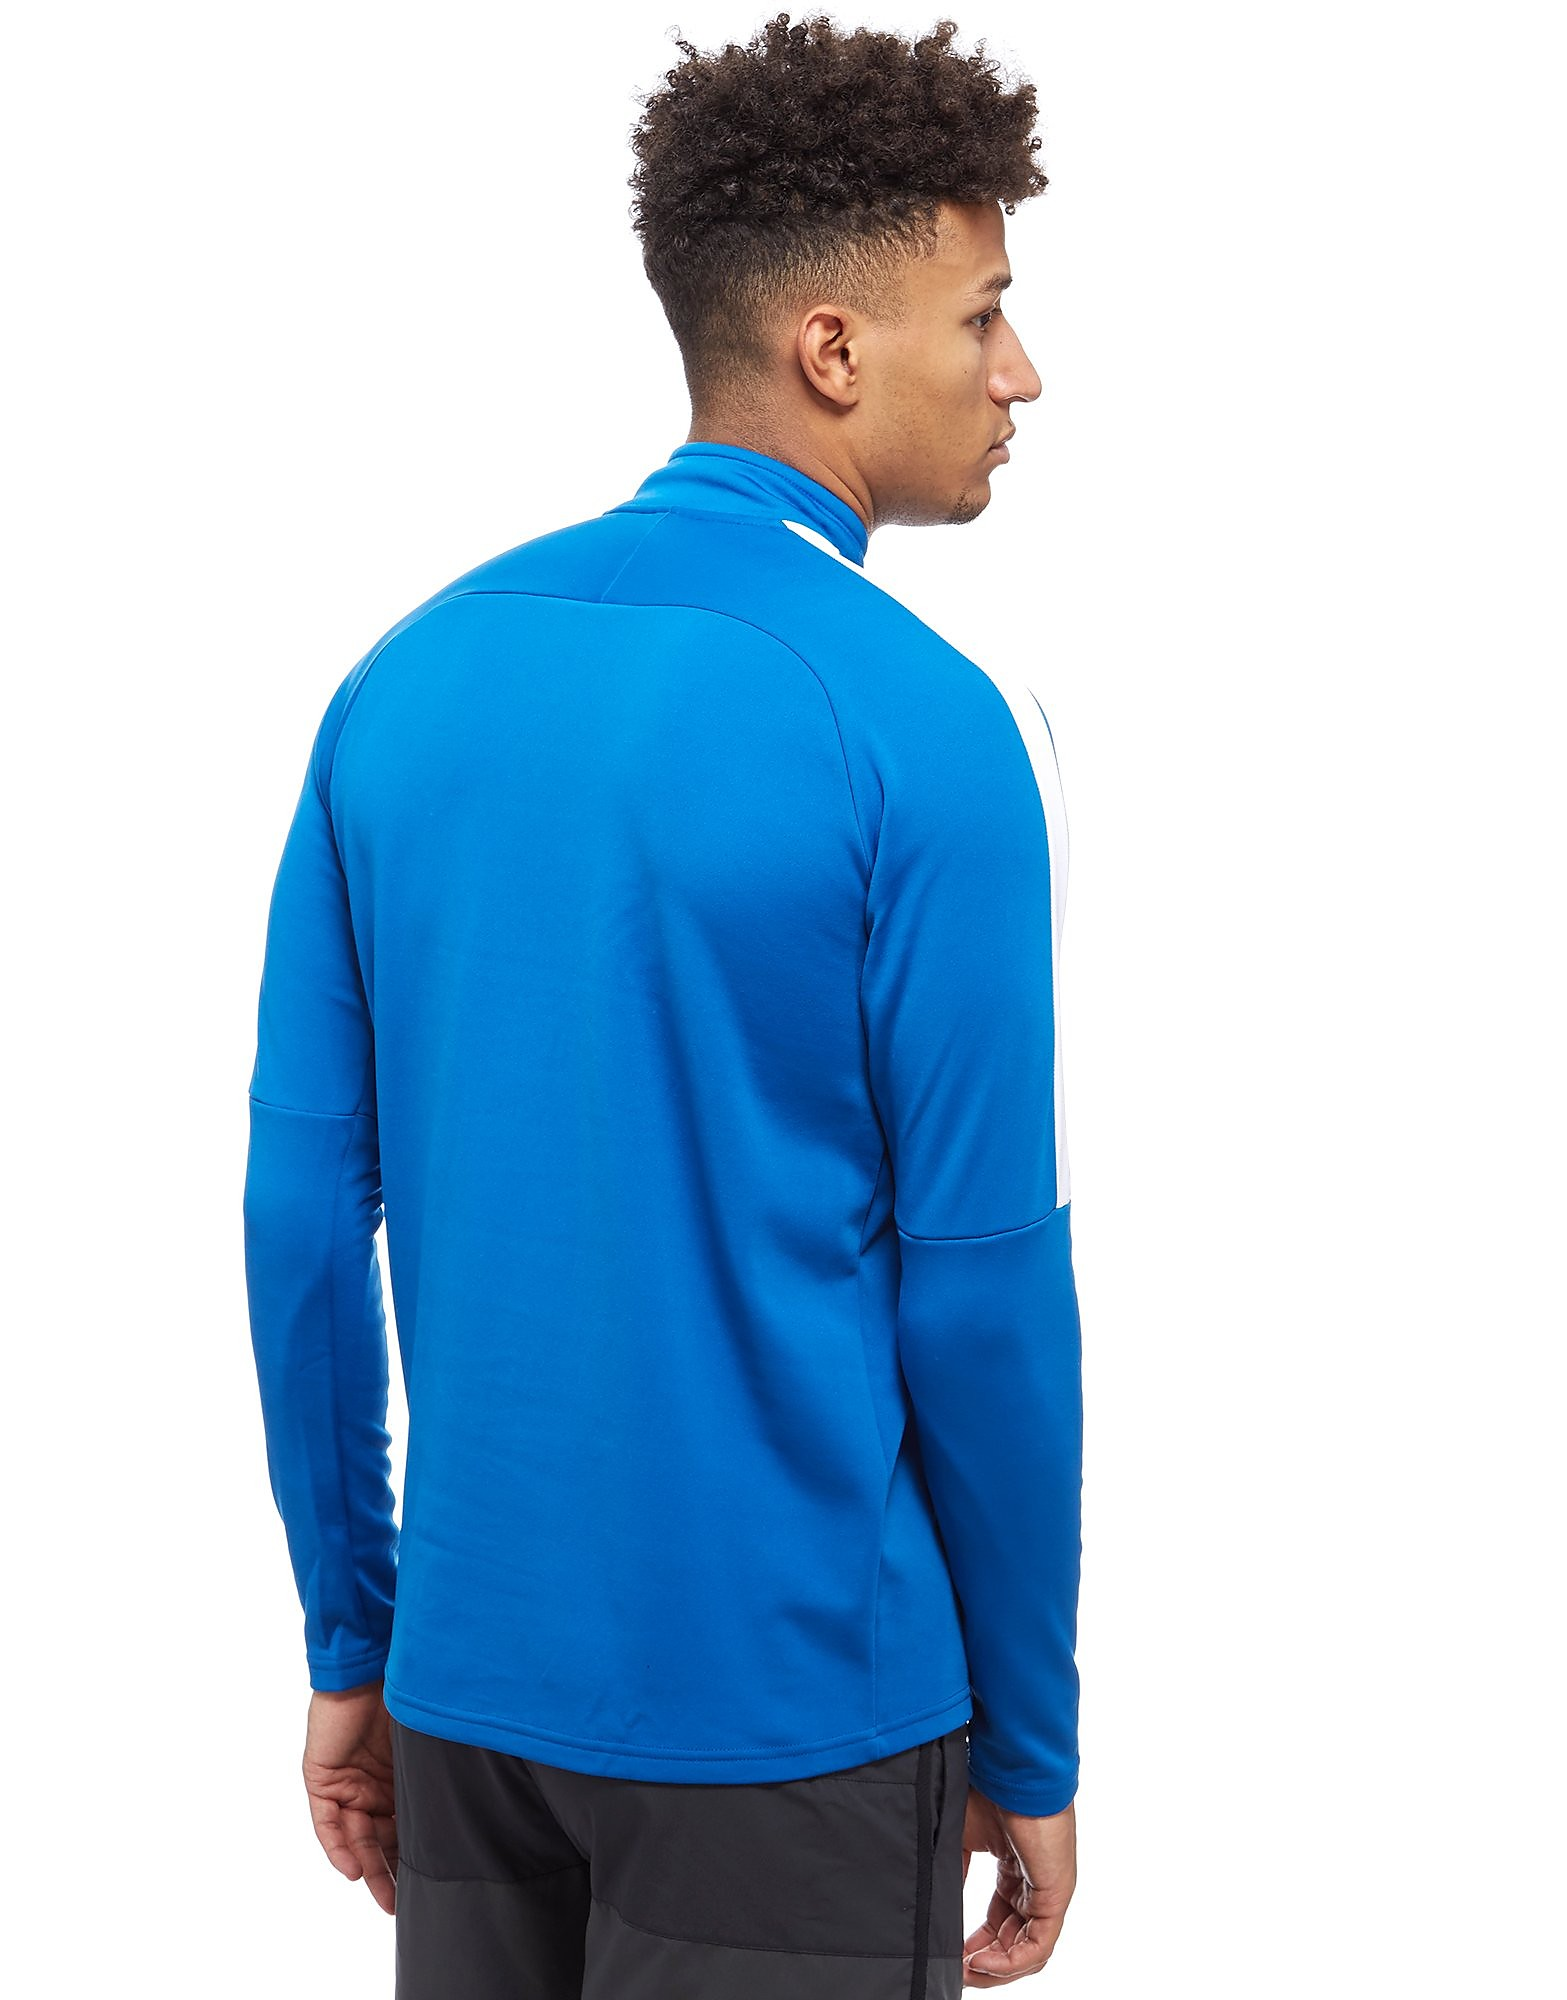 Nike Academy 17 Long Sleeve Top